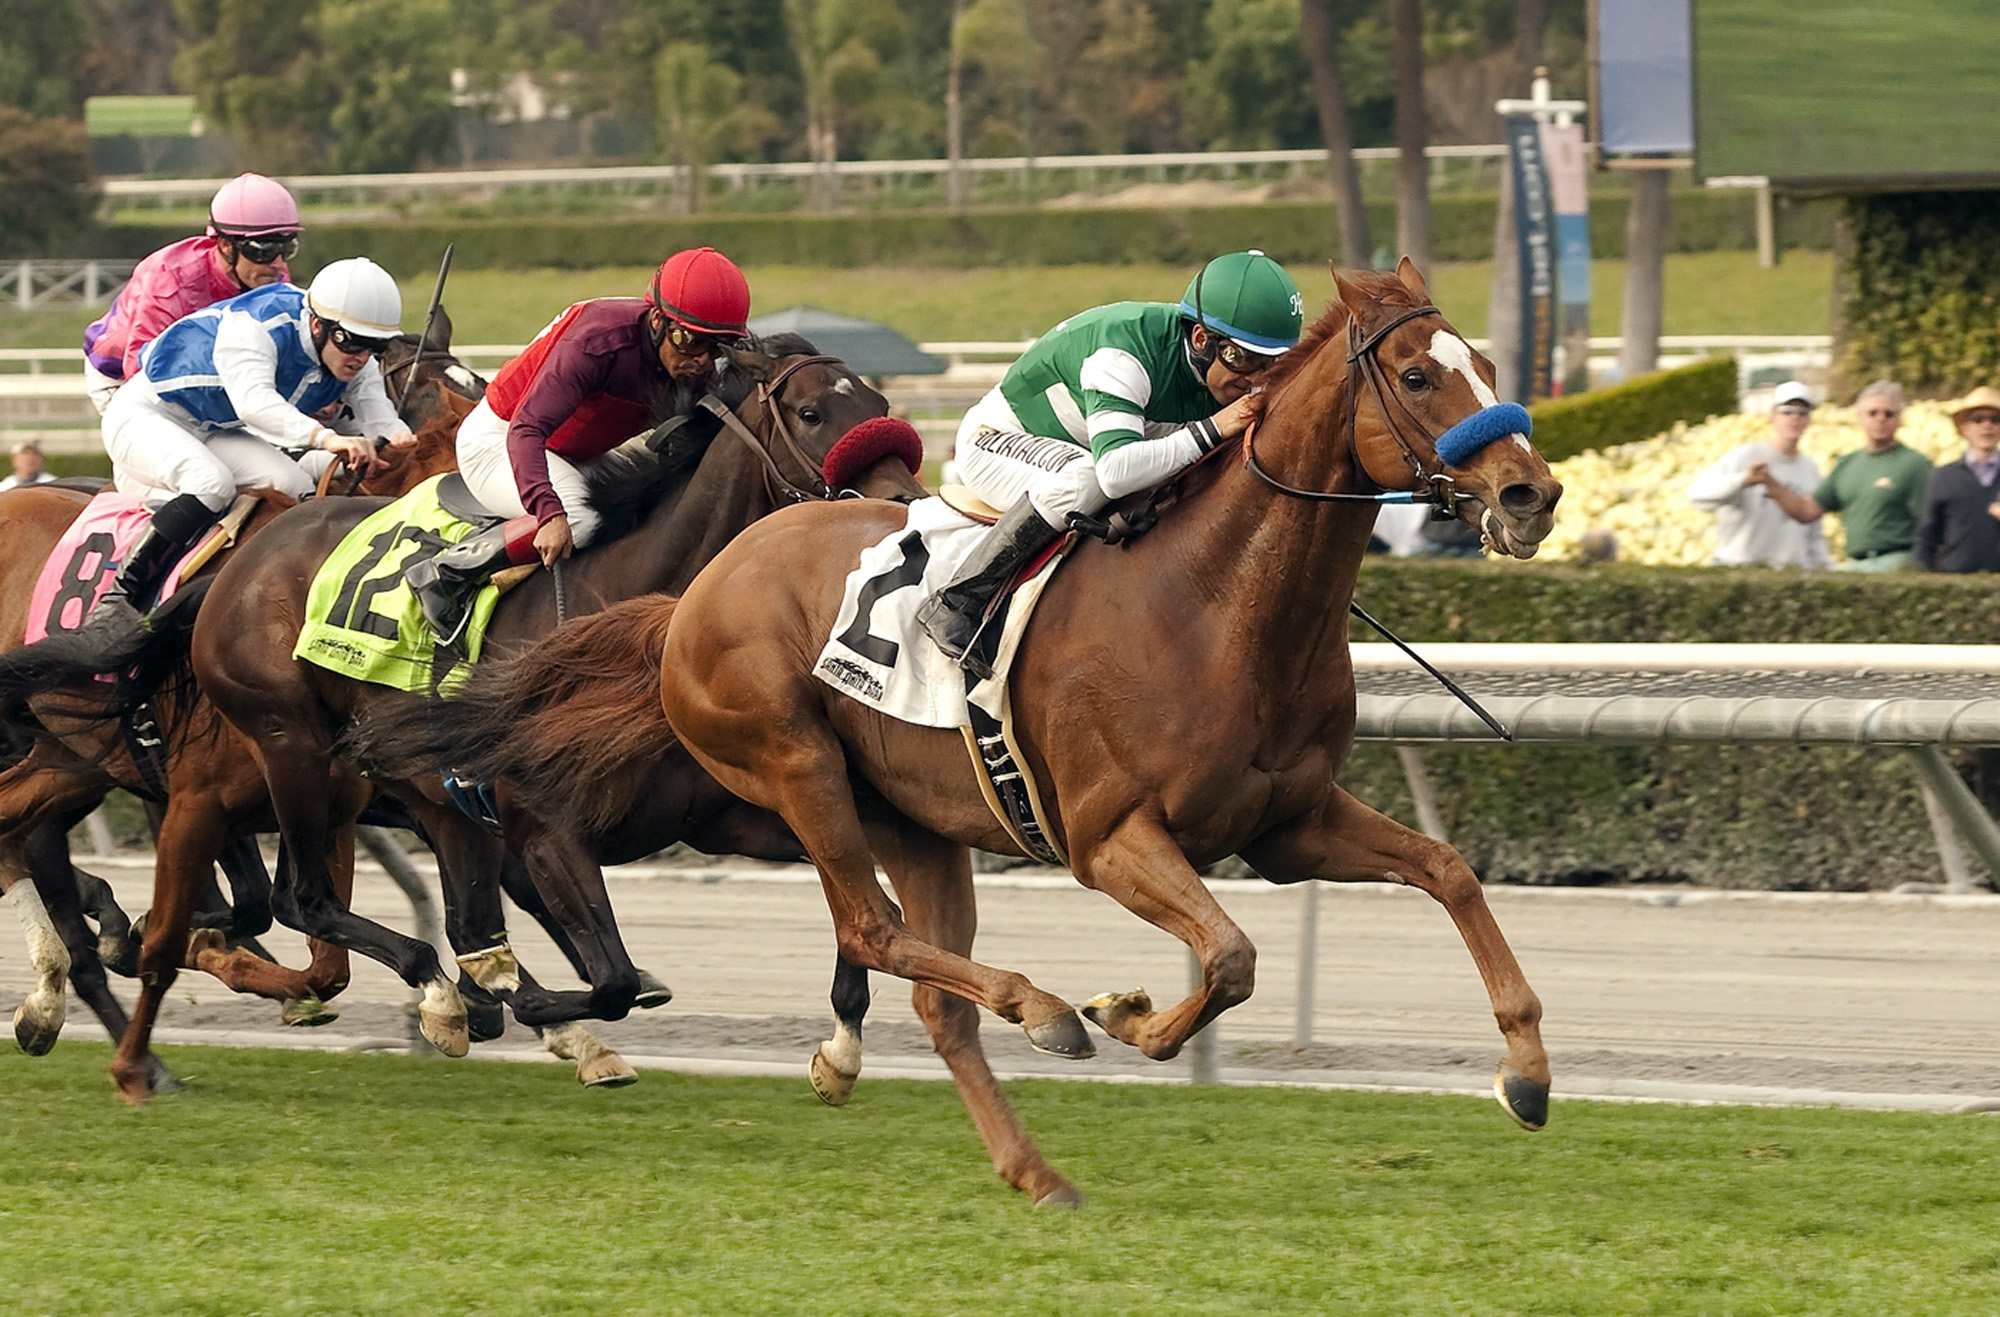 In this image provided by Benoit Photo, Irish-bred Vagabond Shoes, right, with Victor Espinoza aboard, wins the Grade II San Marcos Stakes horse race on Saturday, Feb. 8, 2014, at Santa Anita Park in Arcadia, Calif